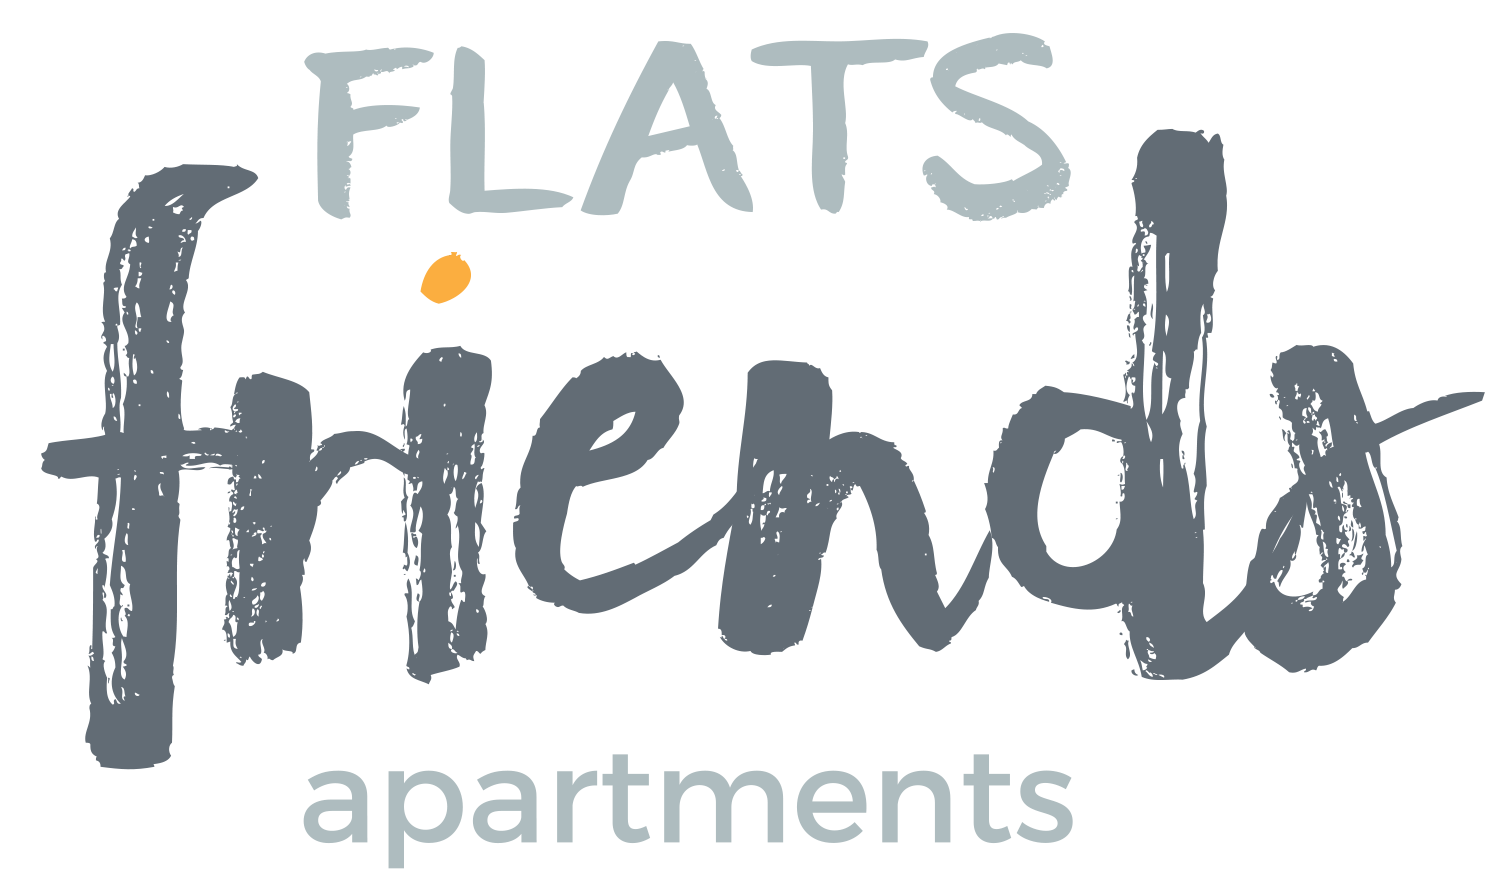 Flats Friends Apartments